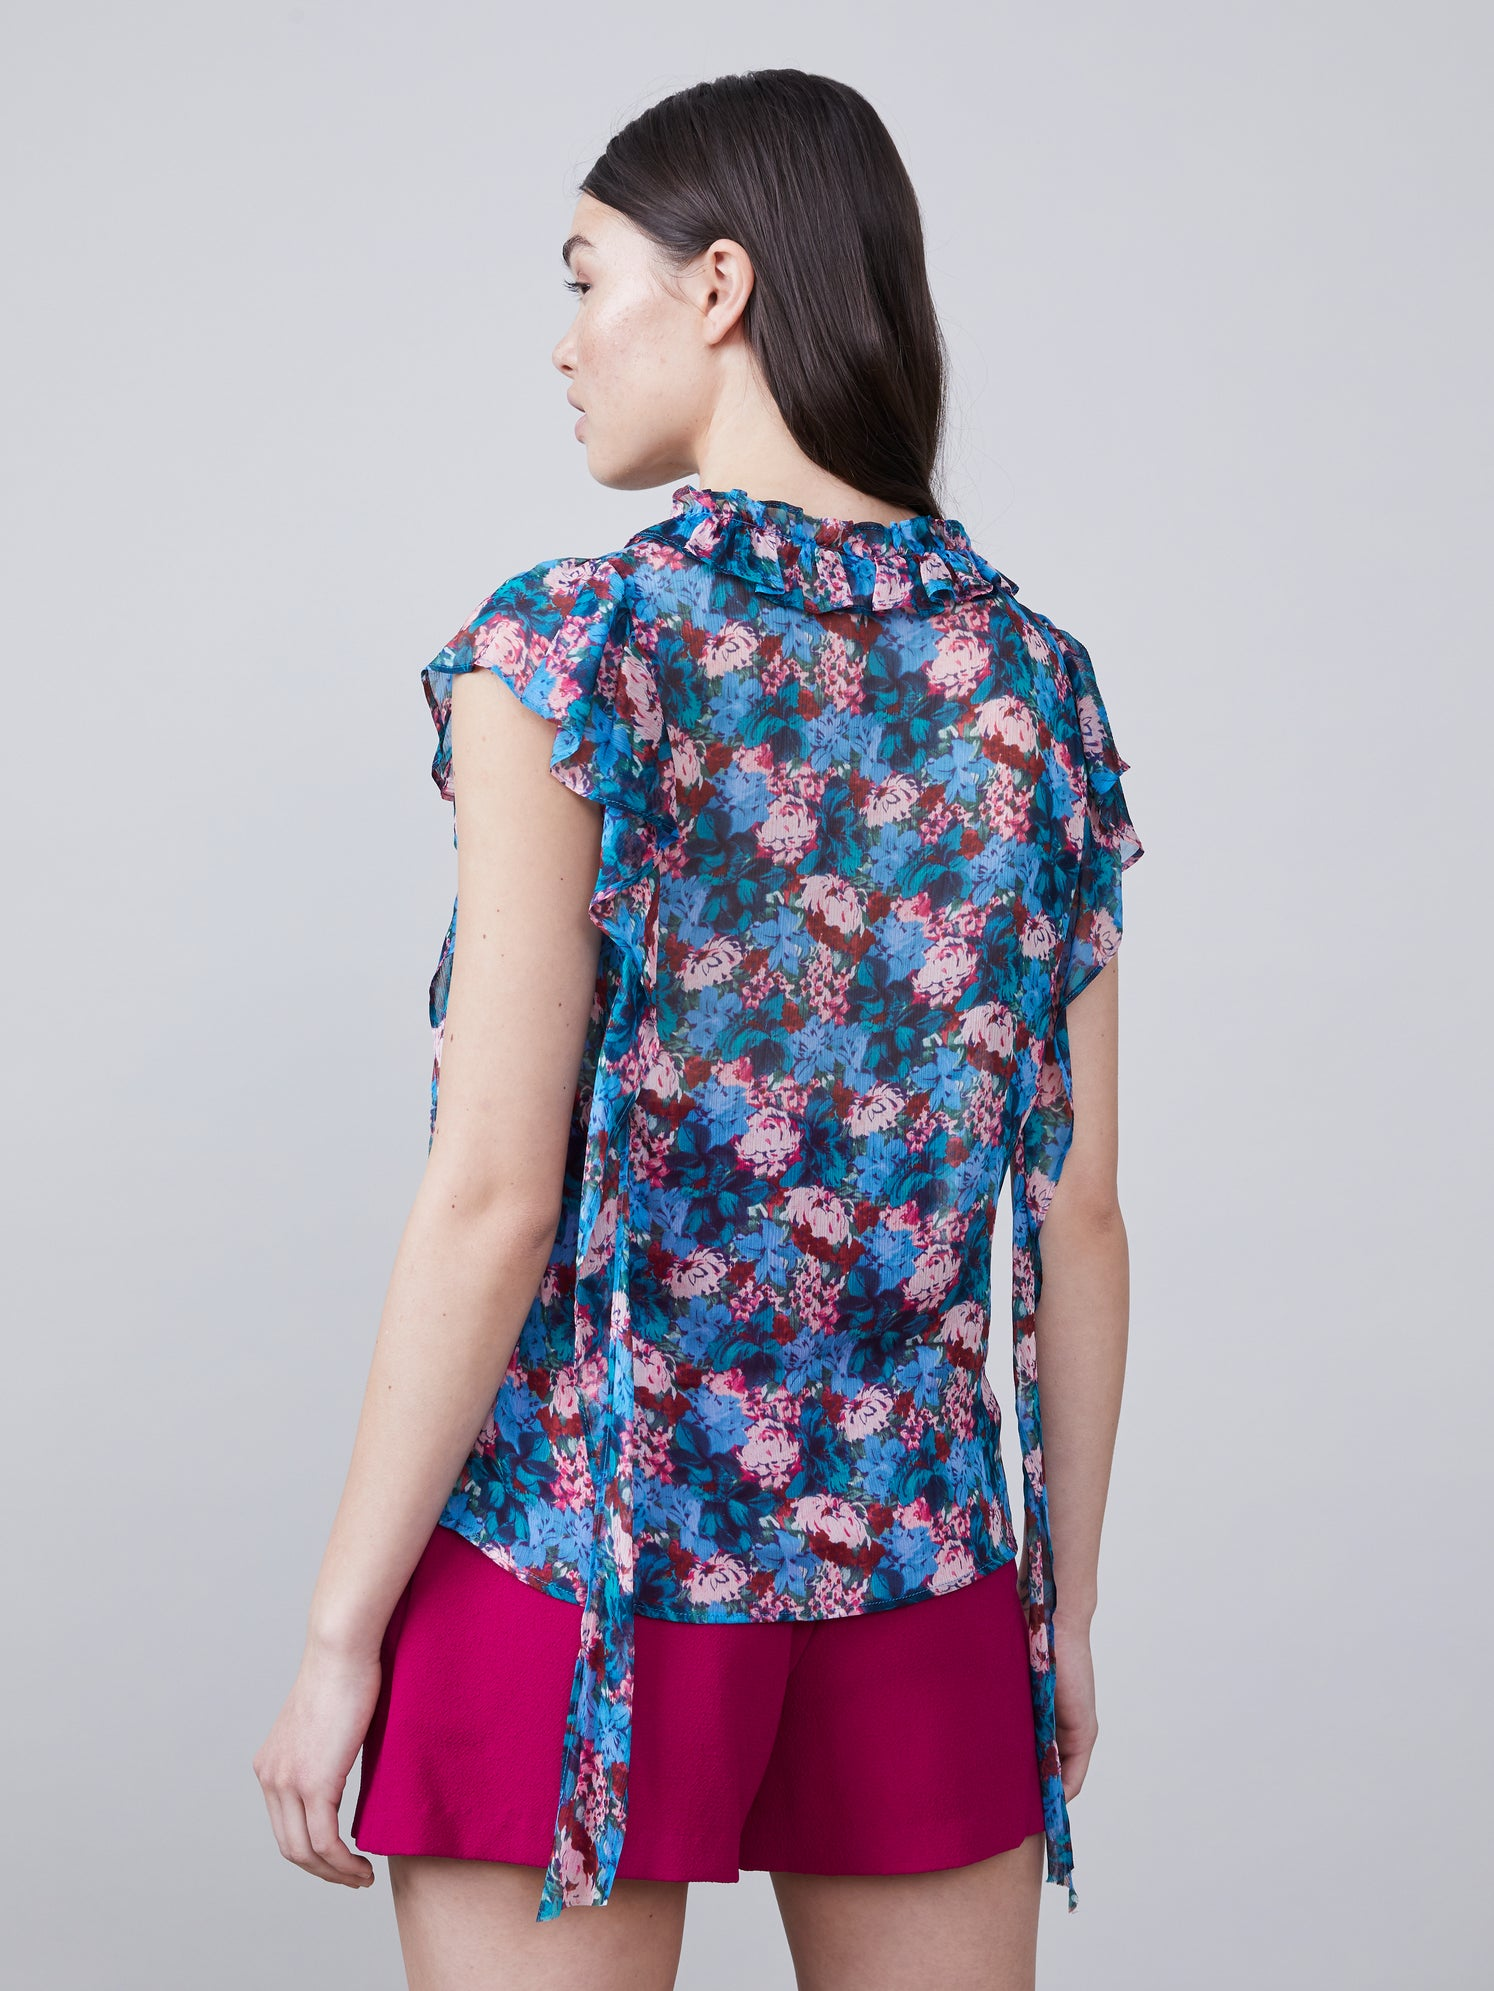 Floral print cascade ruffled blouse